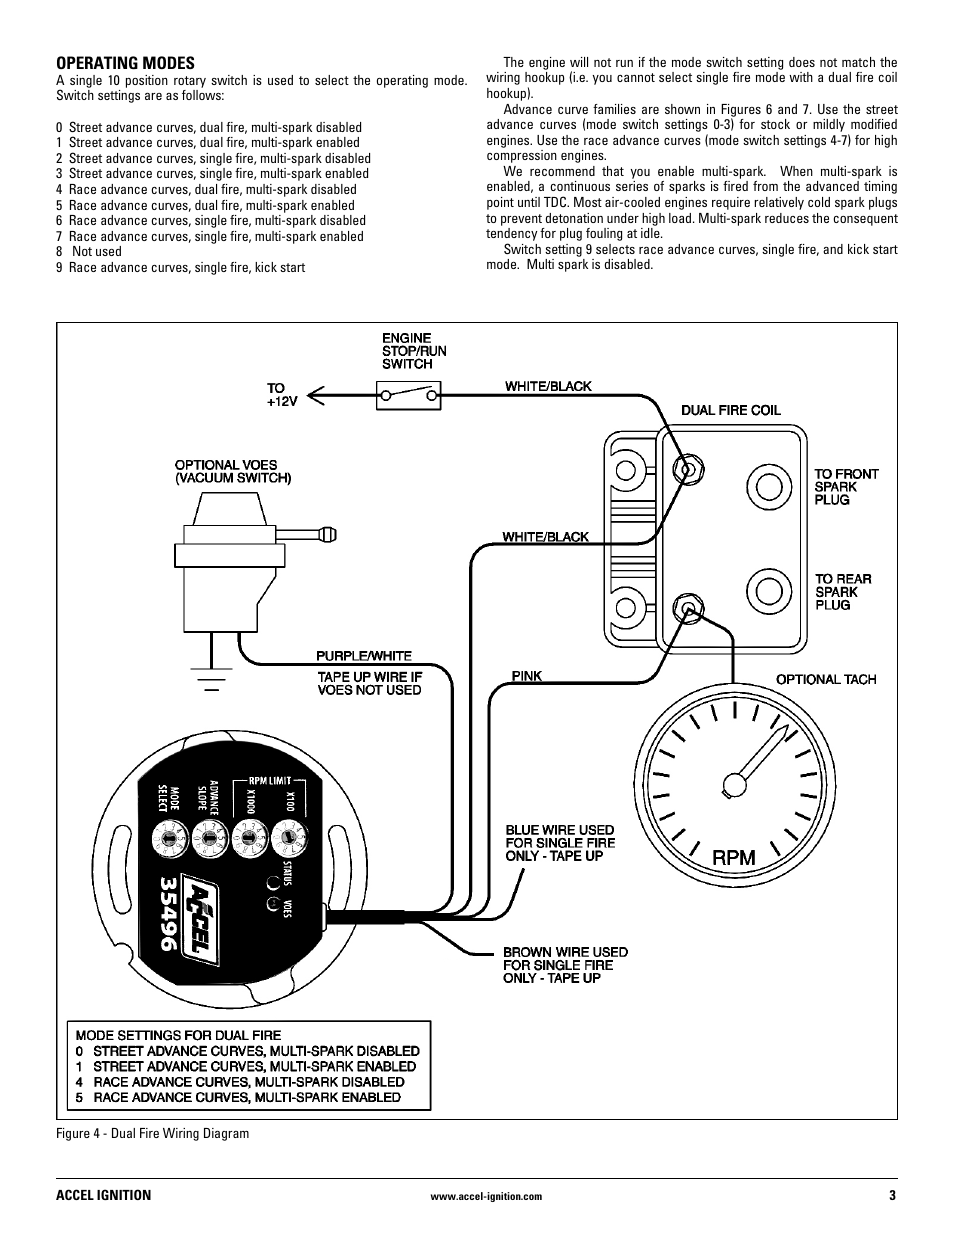 mallory ignition accel ignition 35496 page3 mallory ignition accel ignition 35496 user manual page 3 8 mallory ignition wiring diagram at webbmarketing.co